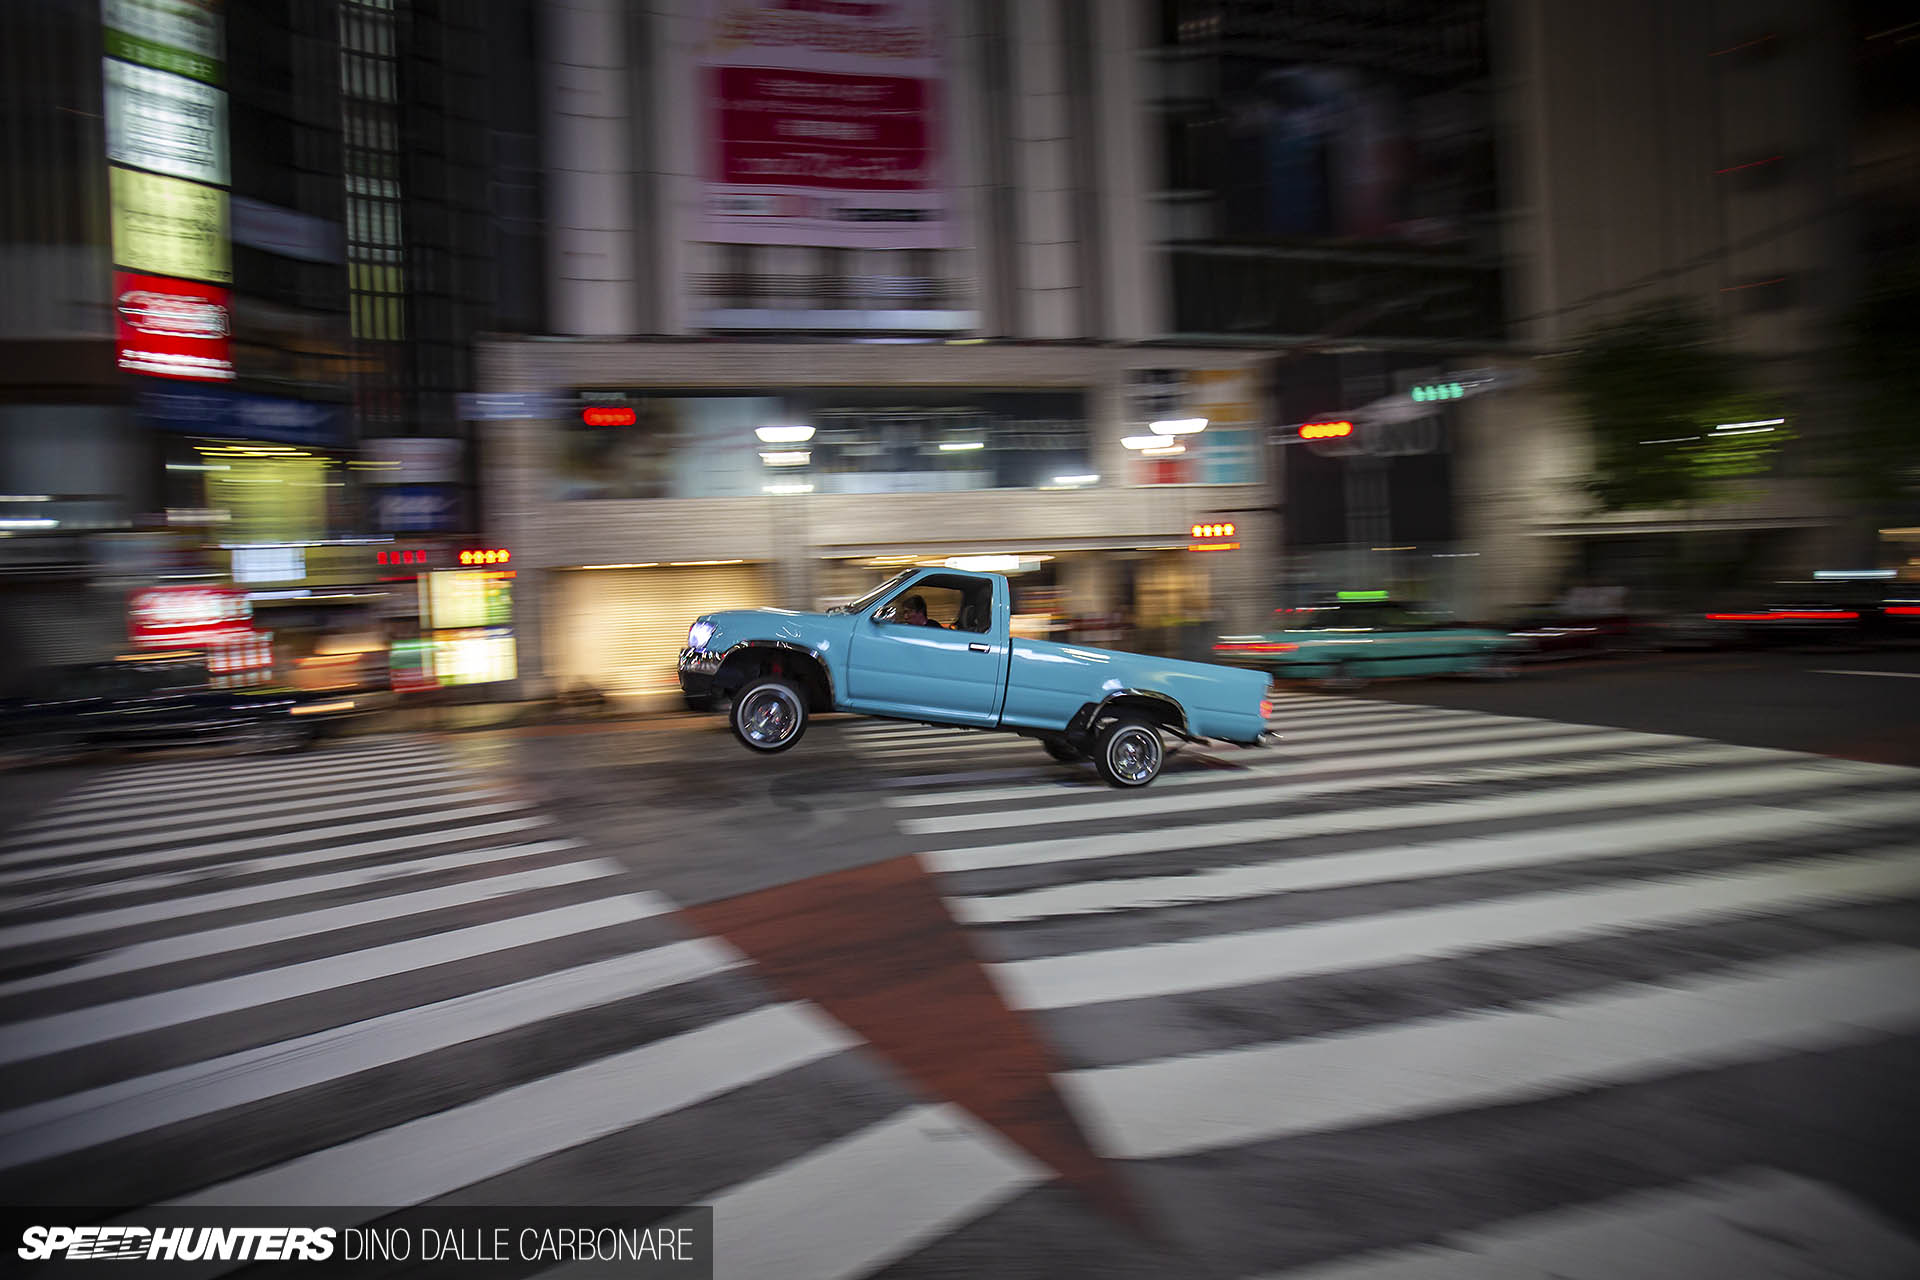 Lowriders Take Over Shibuya